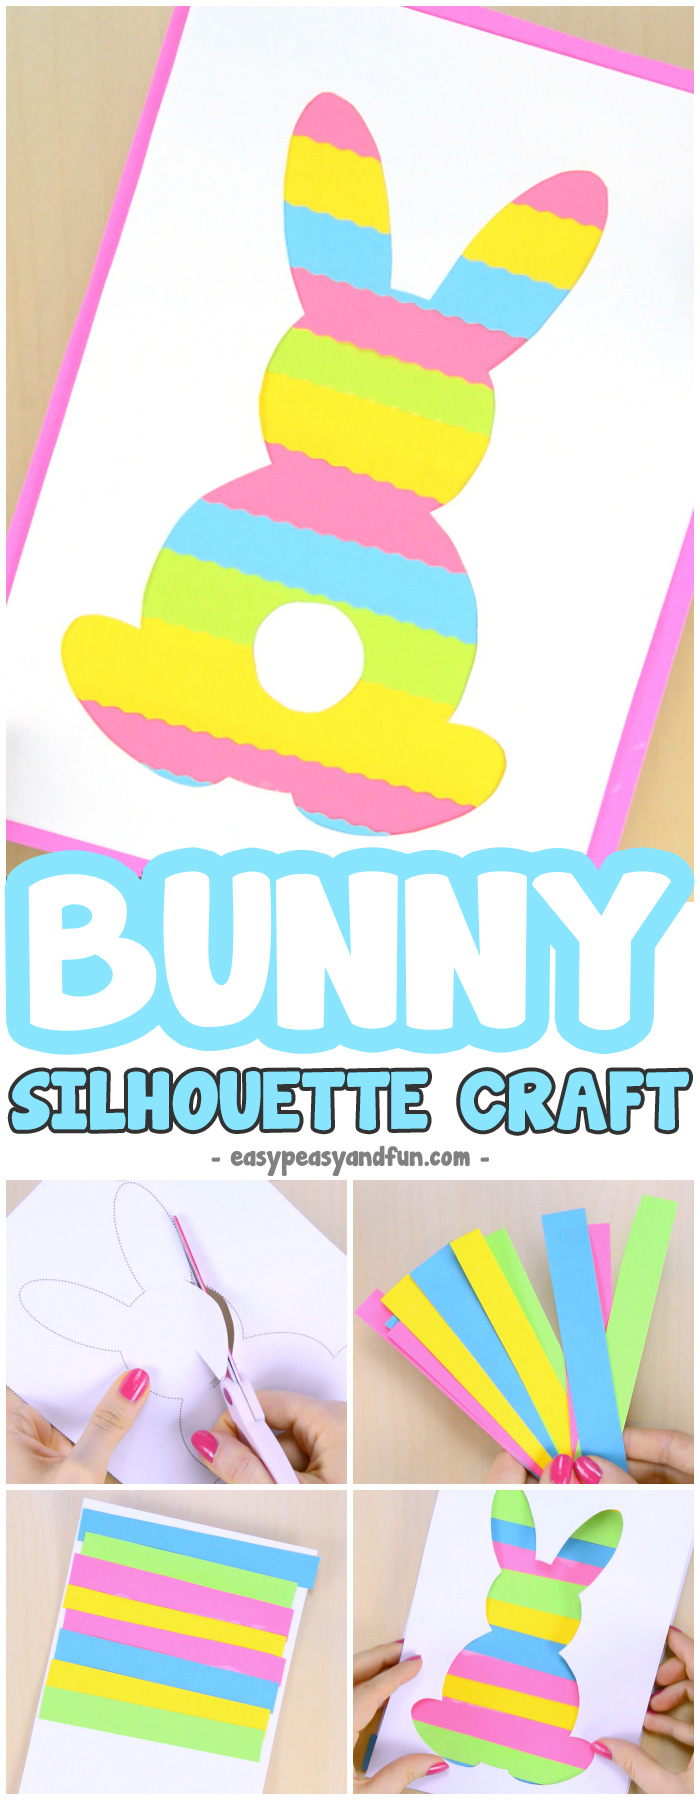 Bunny Silhouette Craft by Easy Peasy and Fun | on Peonies and Cream